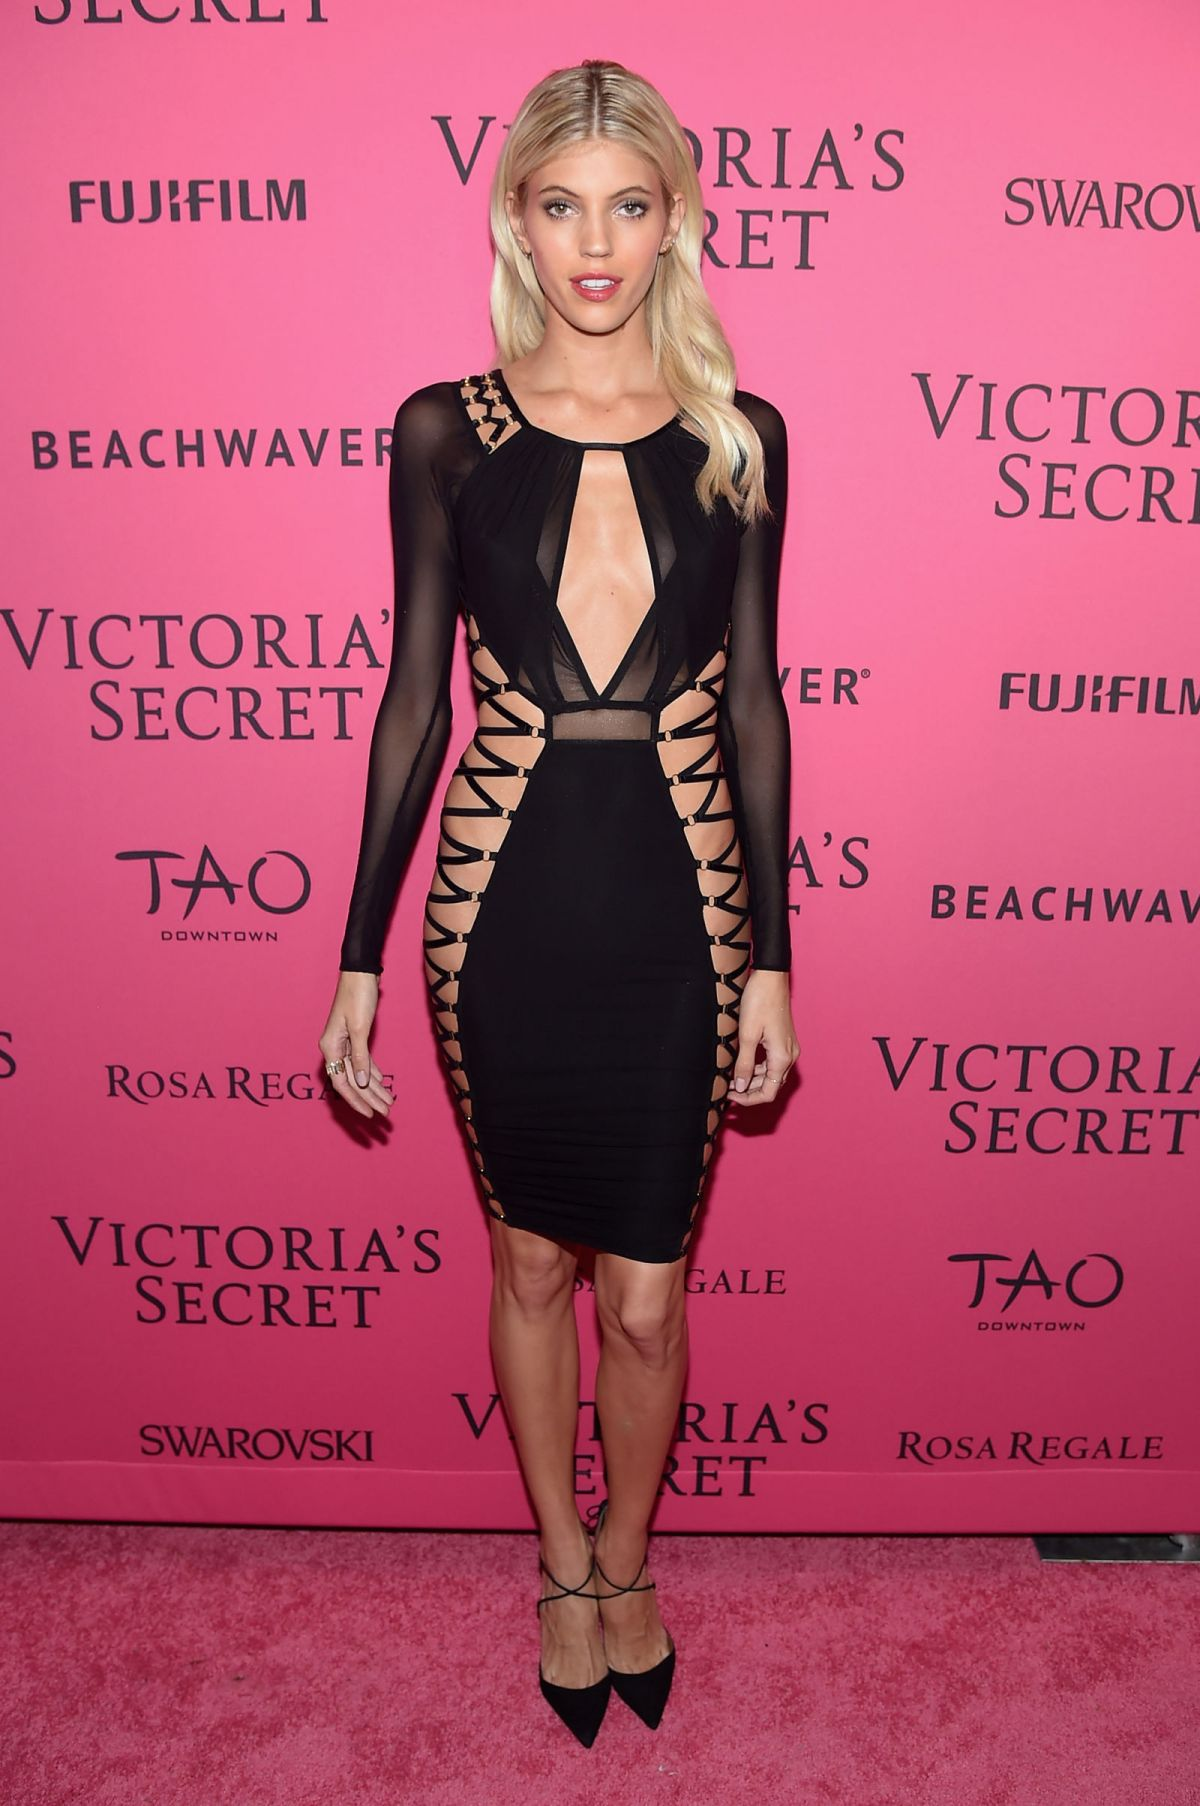 DEVON WINDSOR at Victoria's Secret 2015 Fashion Show After Party 11/10/2015